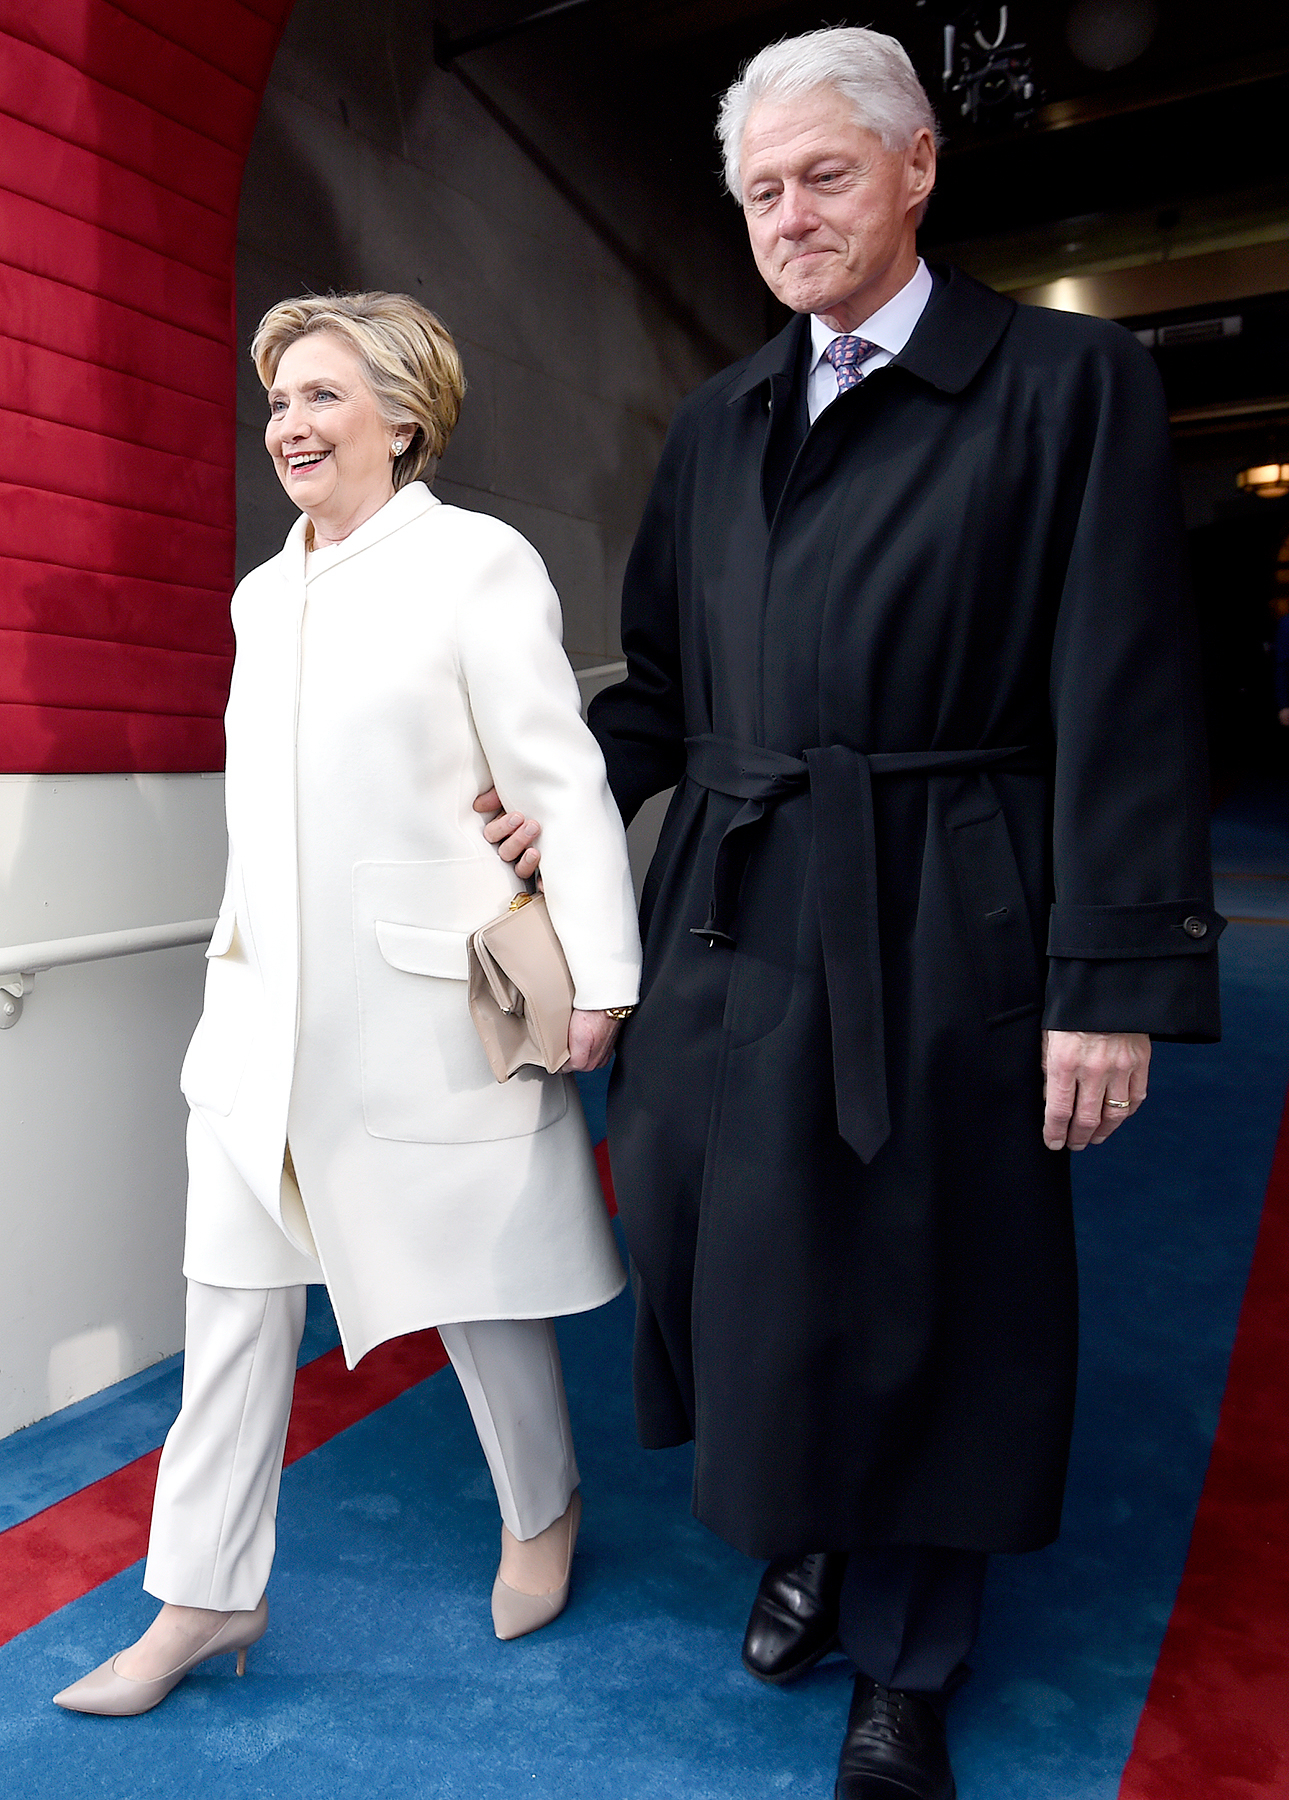 Former US President Bill Clinton and First Lady Hillary Clinton arrive for the Presidential Inauguration of Donald Trump at the US Capitol on January 20, 2017 in Washington, DC.